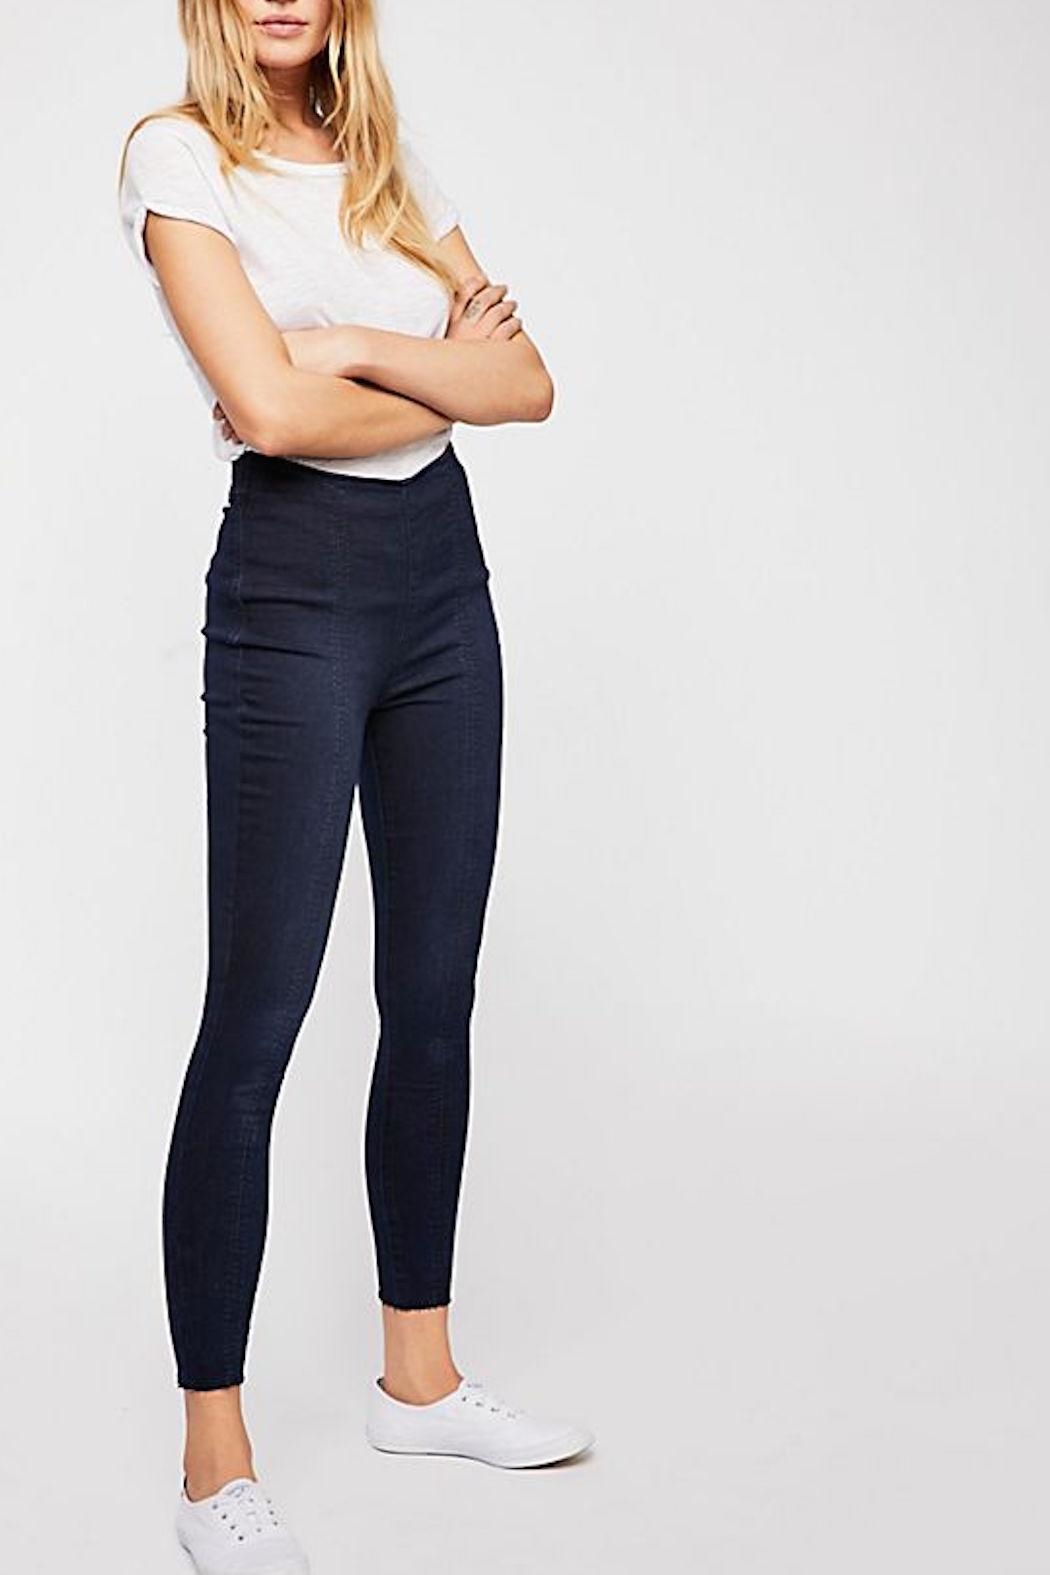 Free People Seamed Skinny Jean - Front Cropped Image